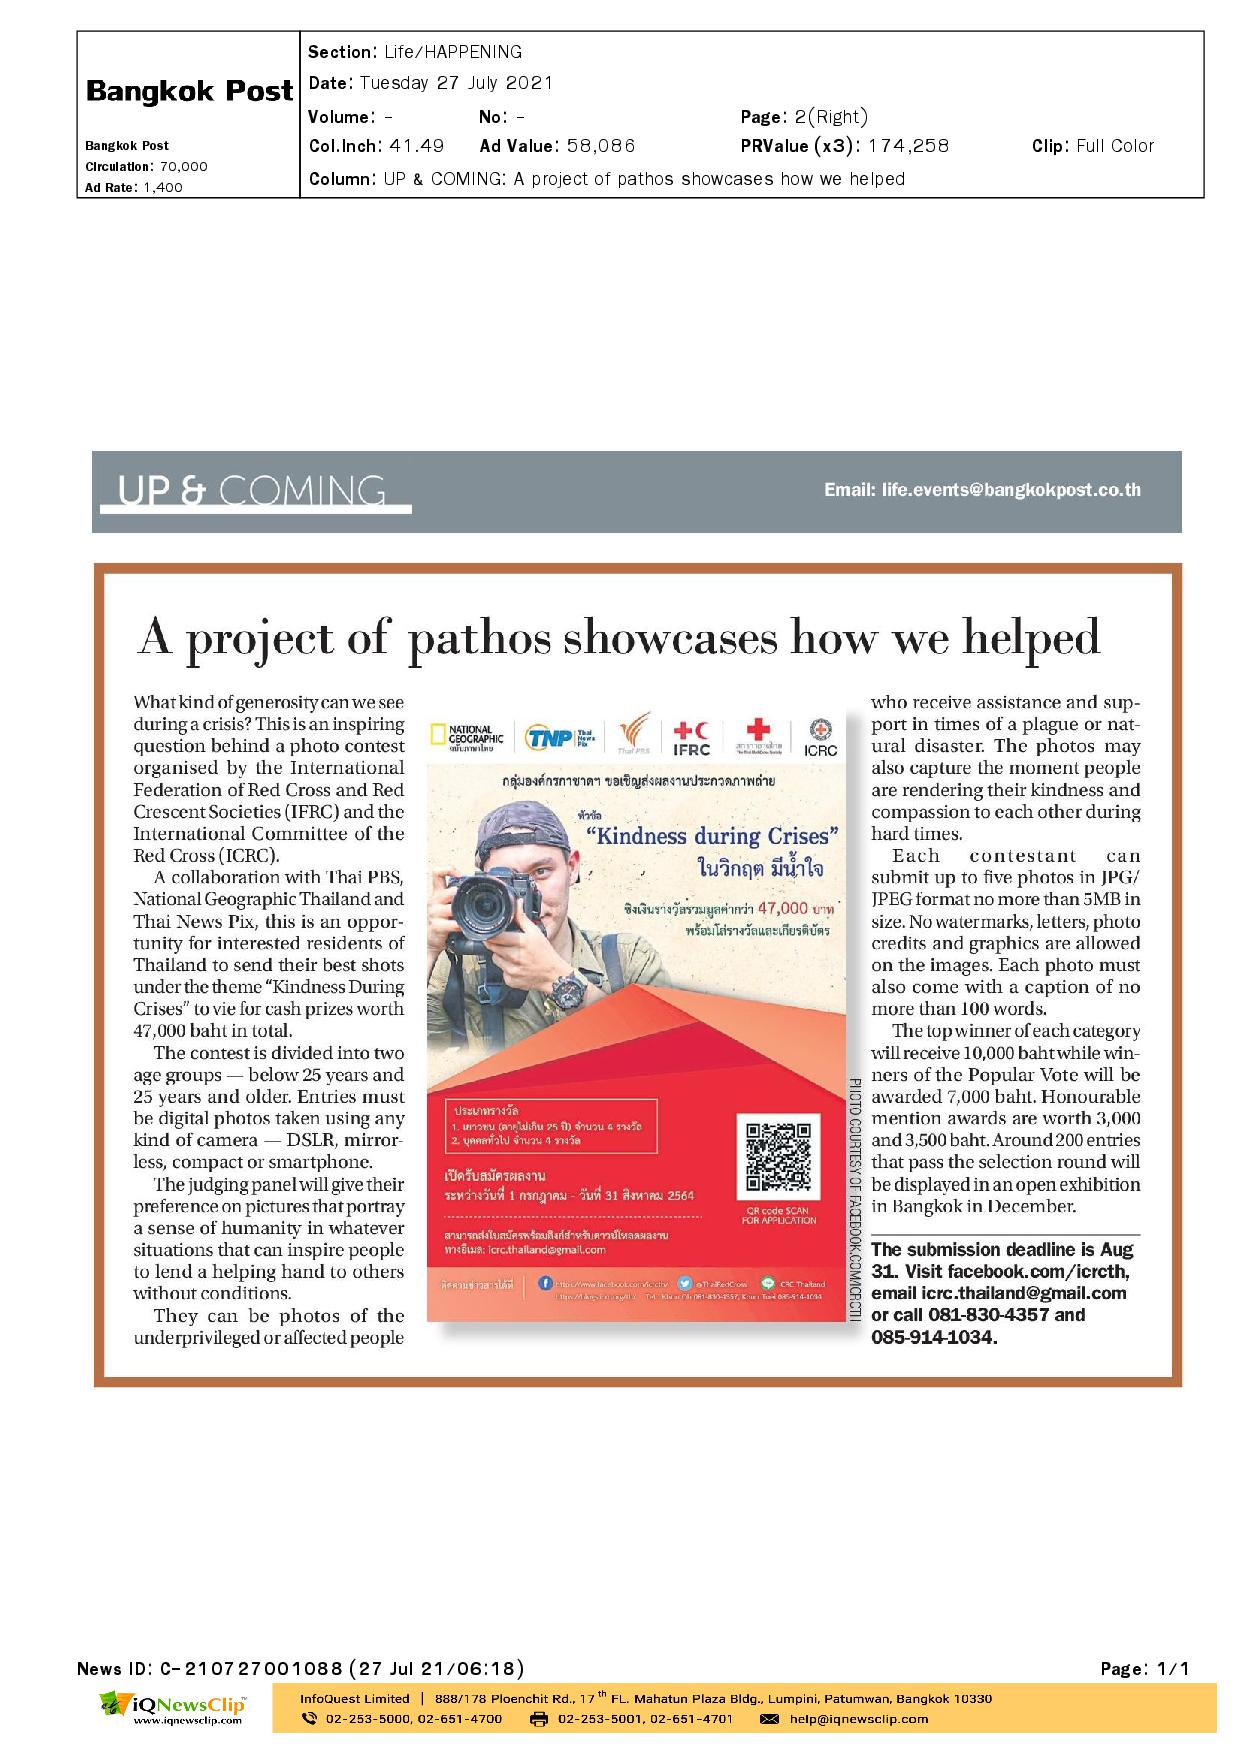 A Project of pathos showcases how we helped